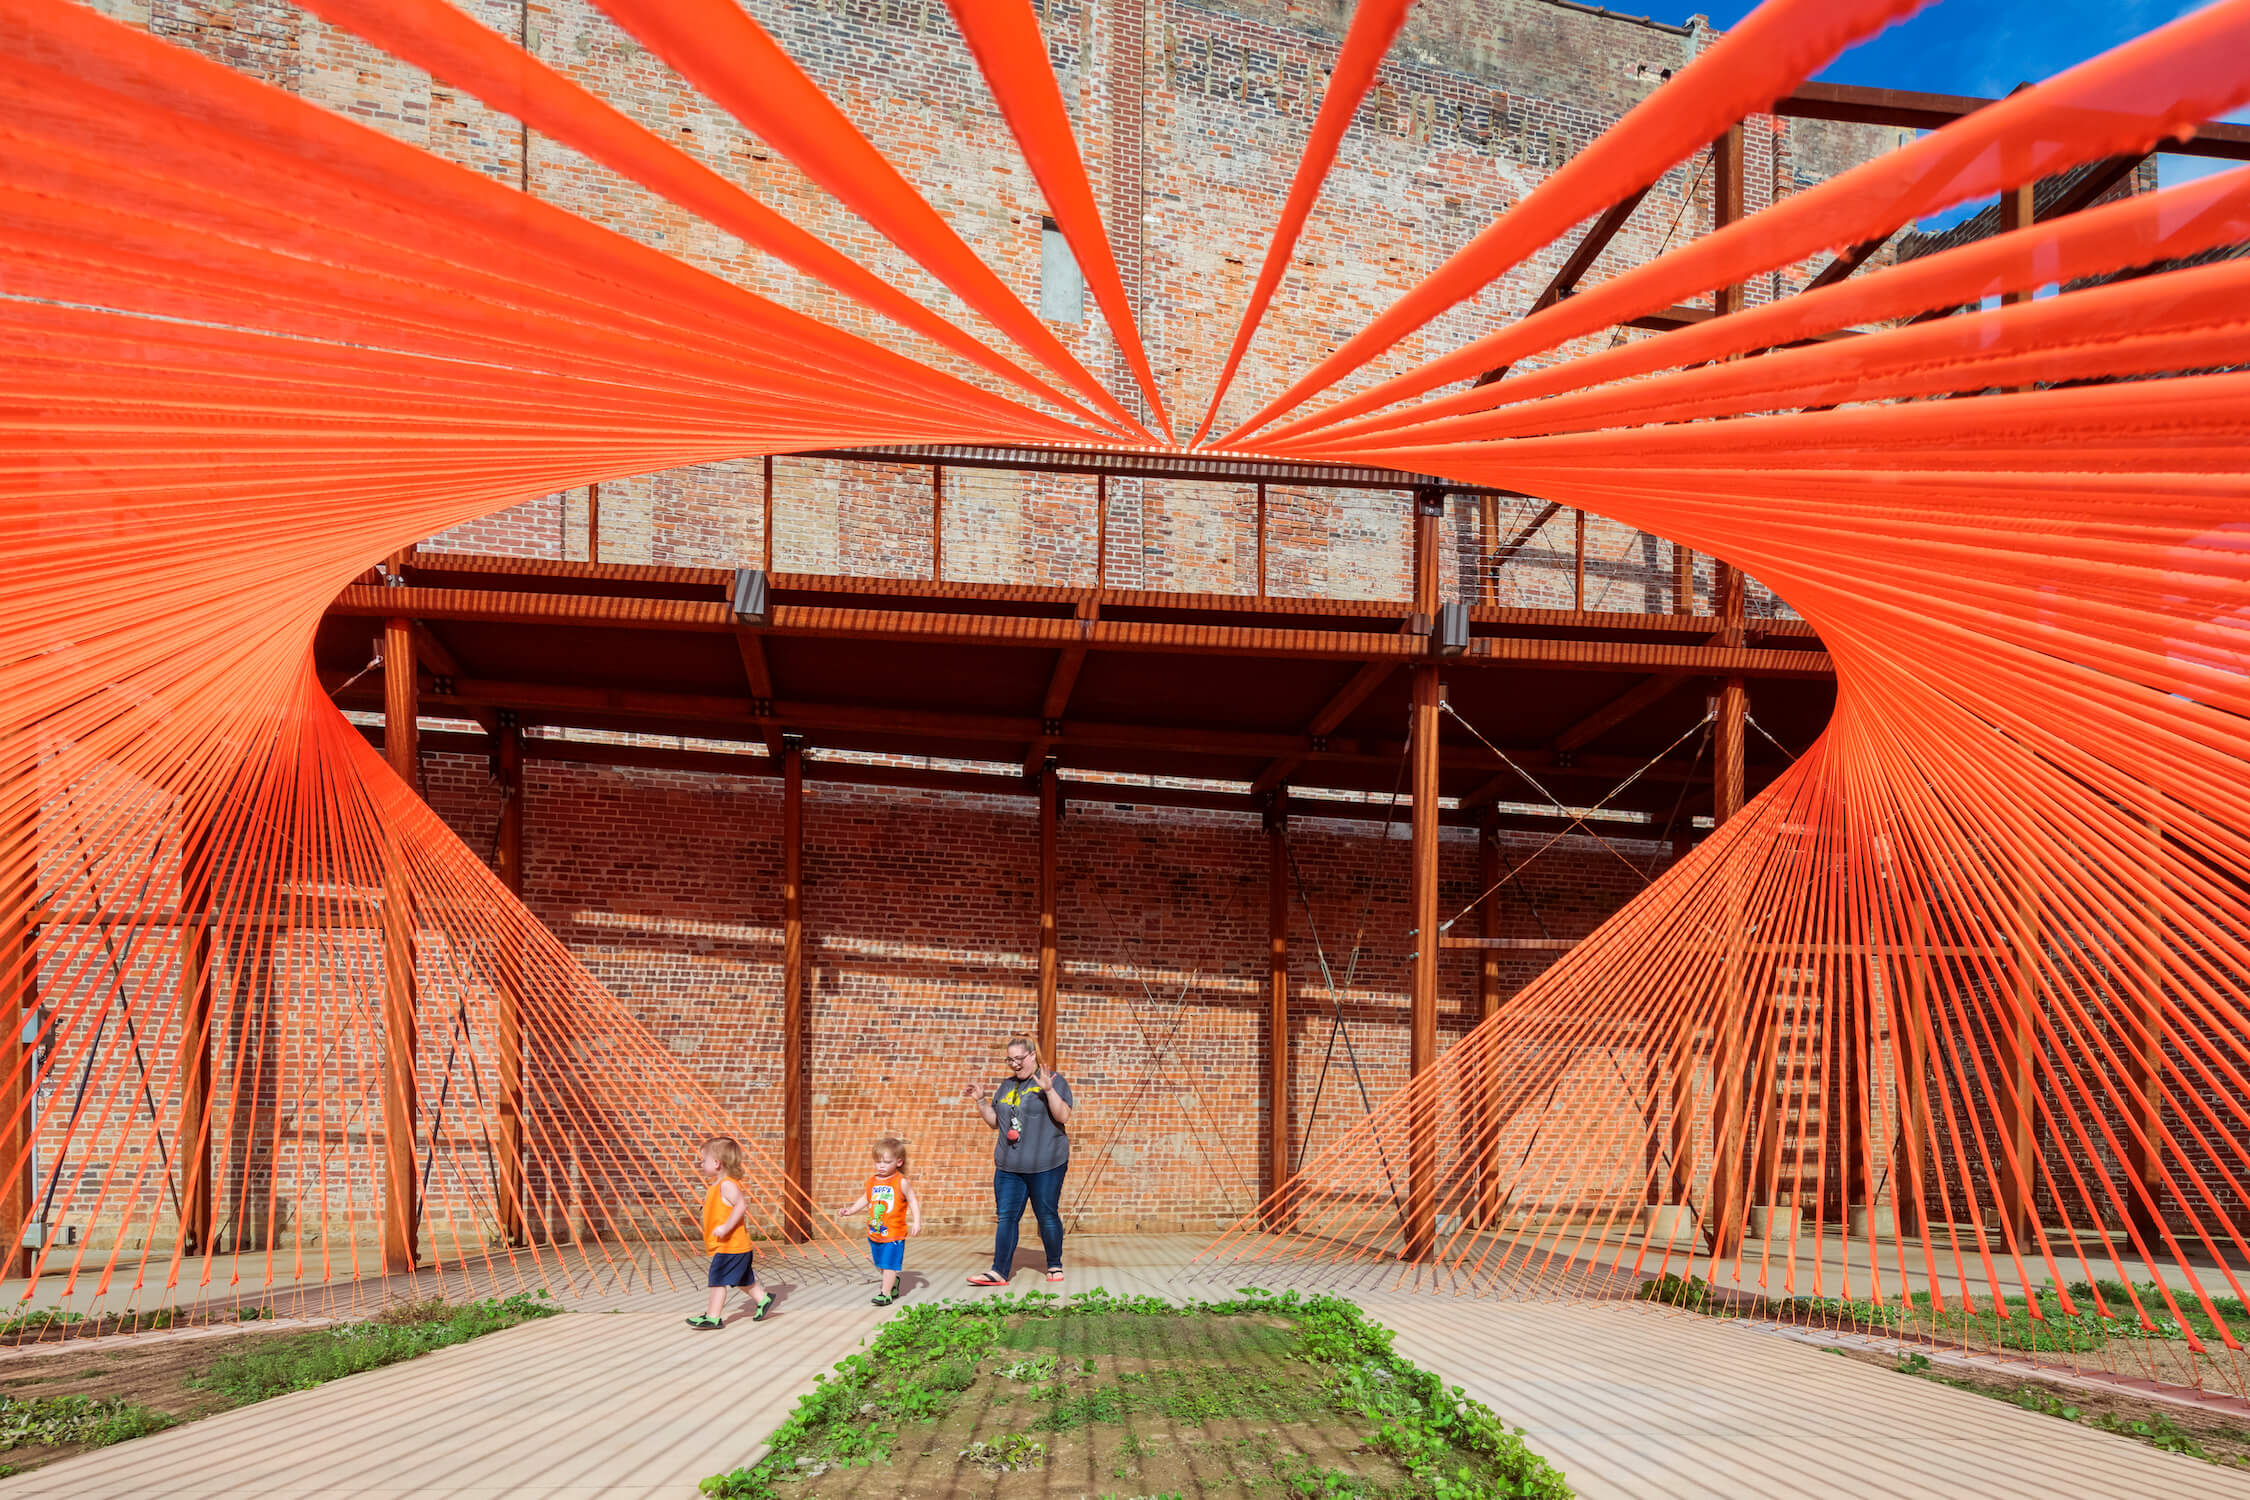 Inside Coschocton Ray Trace, Summer Pavilions 2019